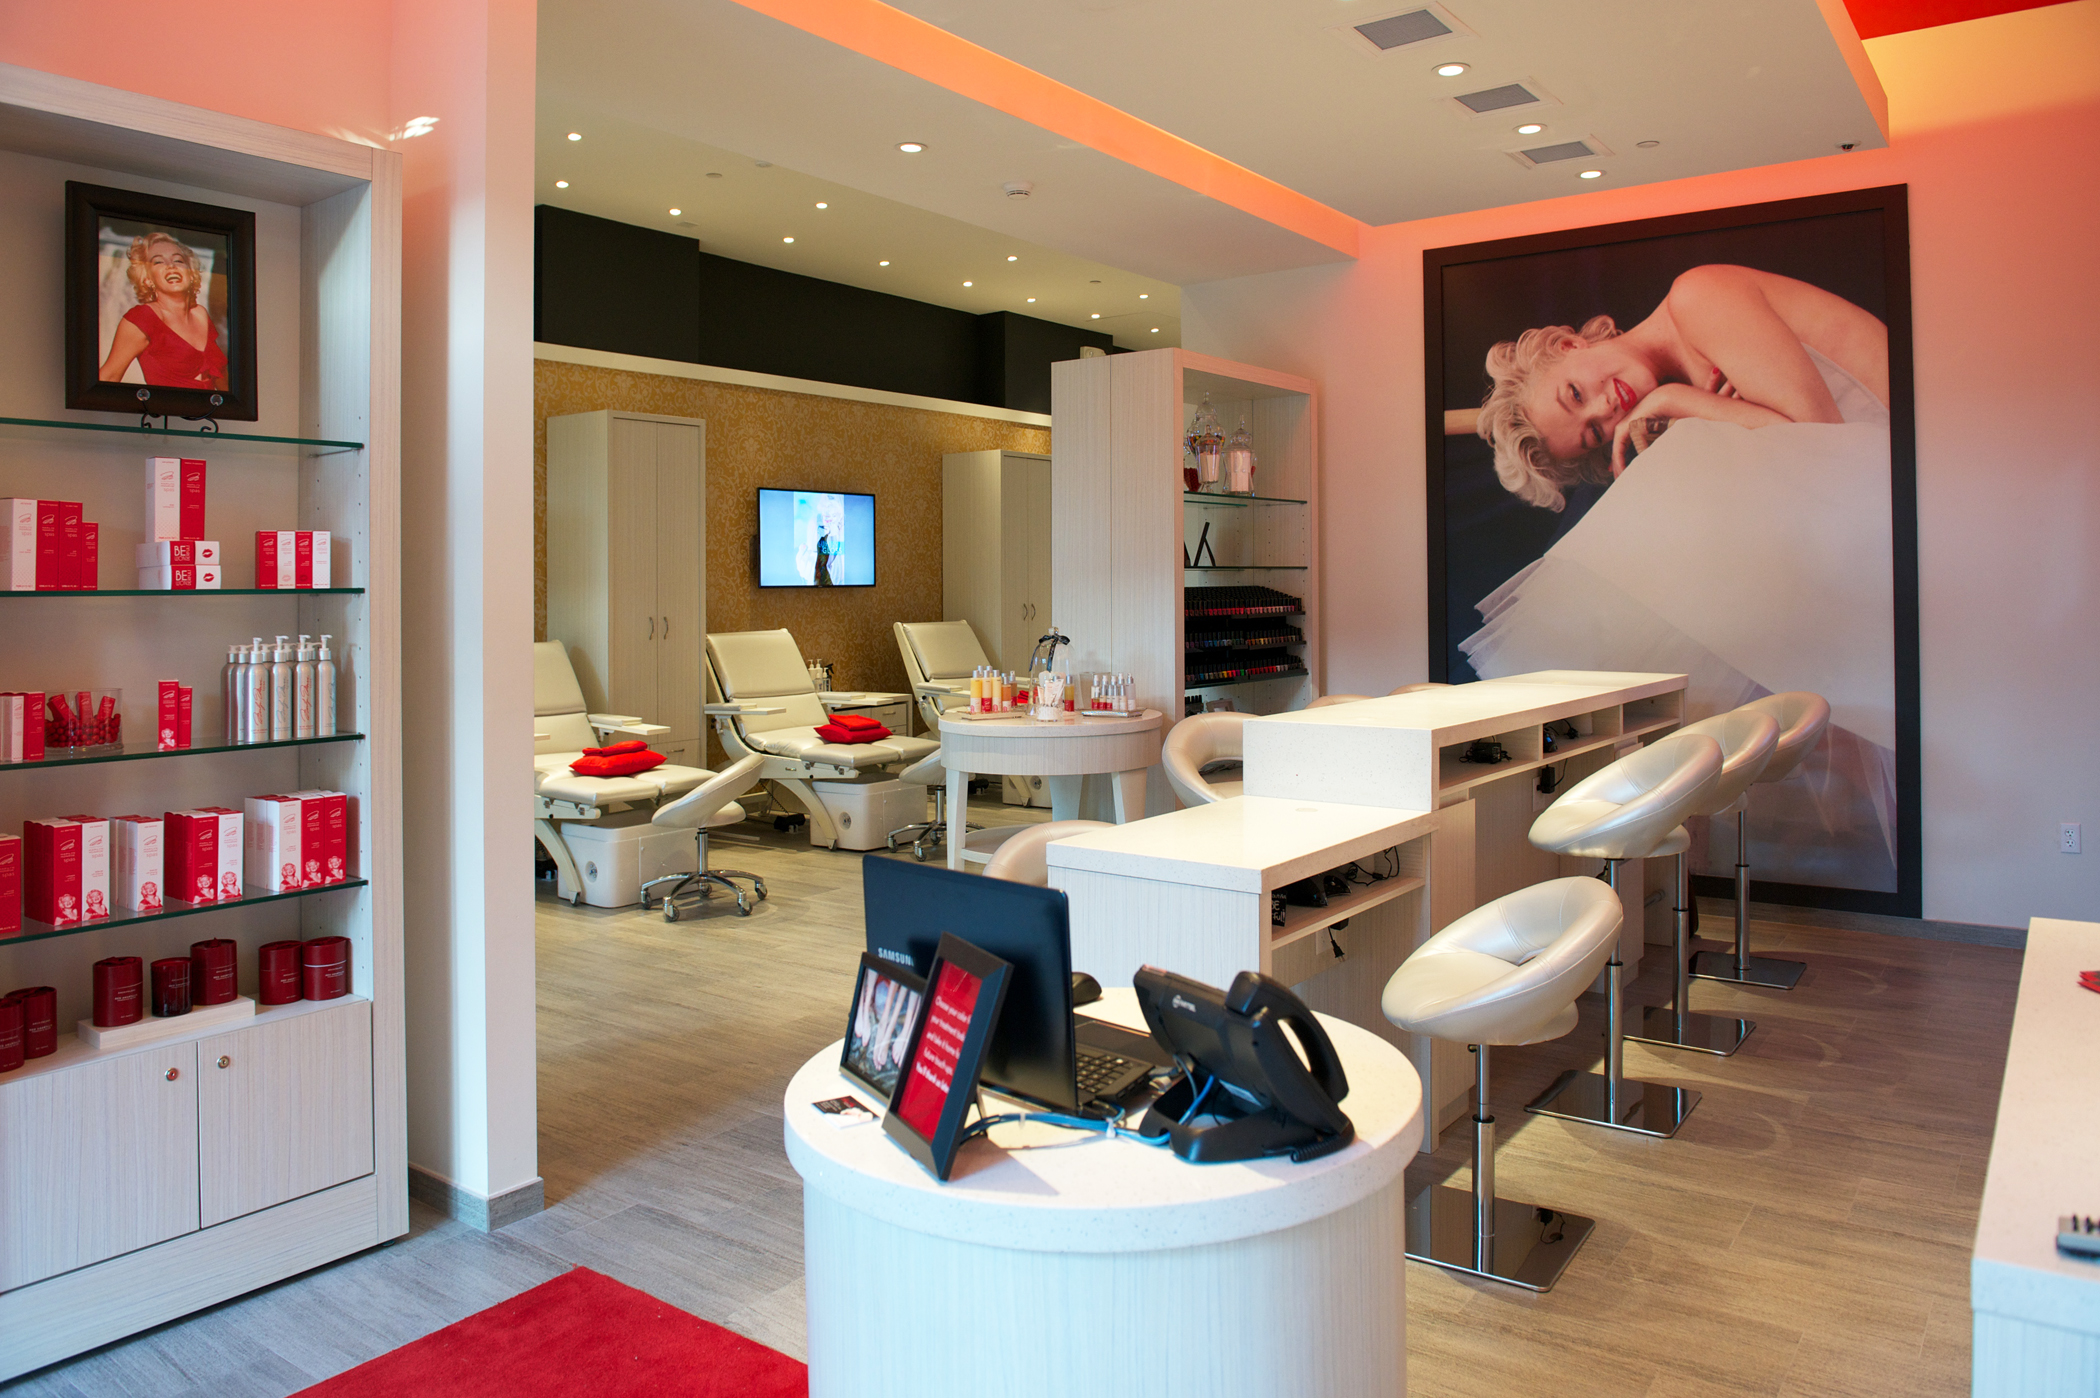 0713a6c7f3 A glamorous nail spa has just opened in Midtown Miami named after the  sexiest starlet in history  Marilyn Monroe. The spa has luxurious oversize  chairs ...